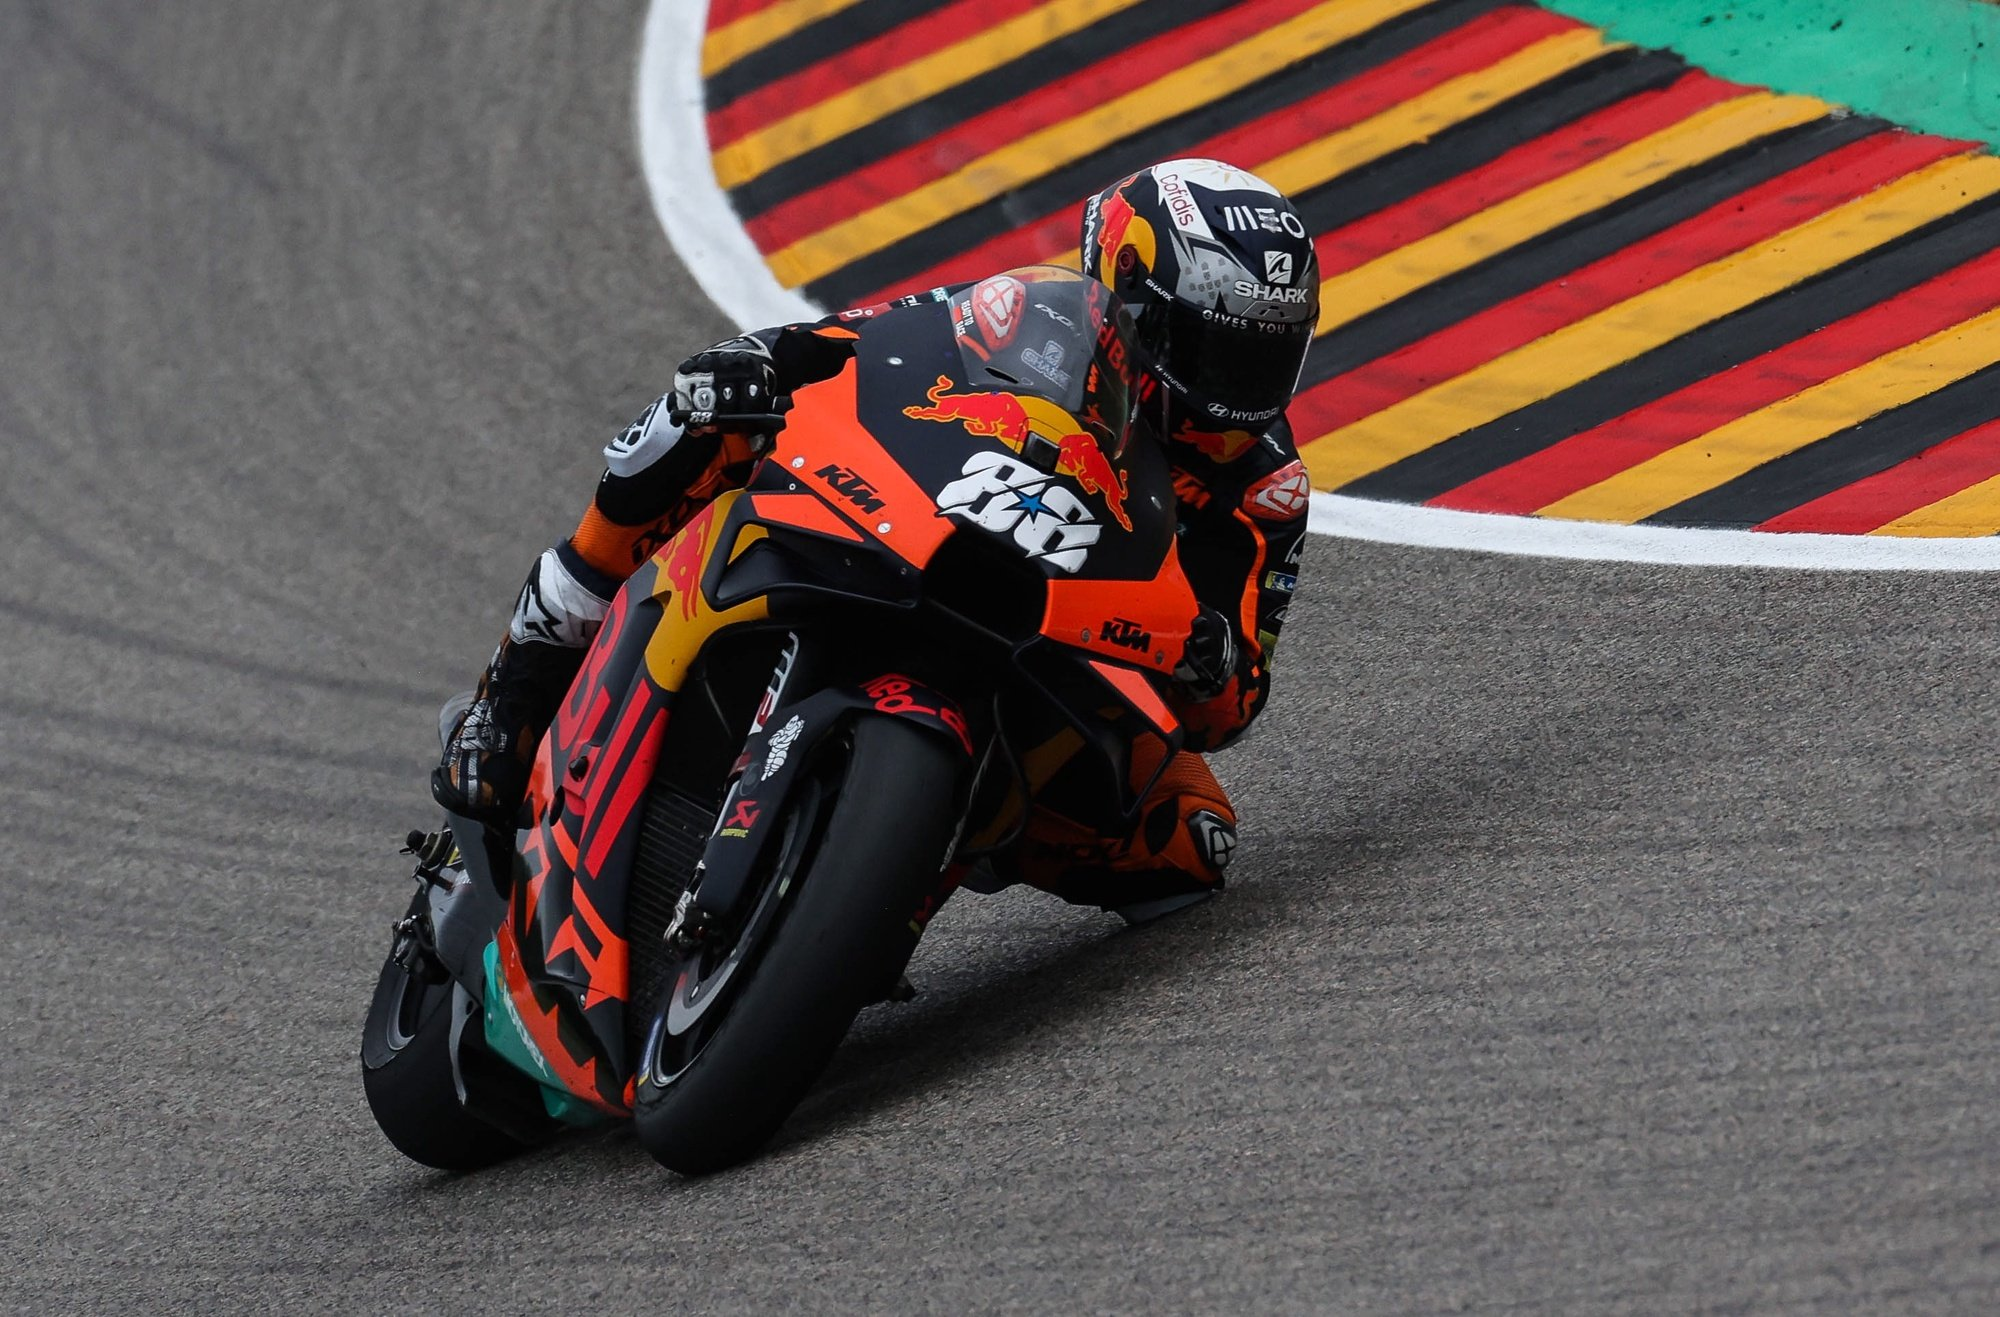 epa09288255 Portuguese MotoGP rider Miguel Oliveira of the Red Bull KTM Factory Racing team is on his way to take the second place in the Motorcycling Grand Prix of Germany at the Sachsenring racing circuit in Hohenstein-Ernstthal, Germany, 20 June 2021.  EPA/FILIP SINGER